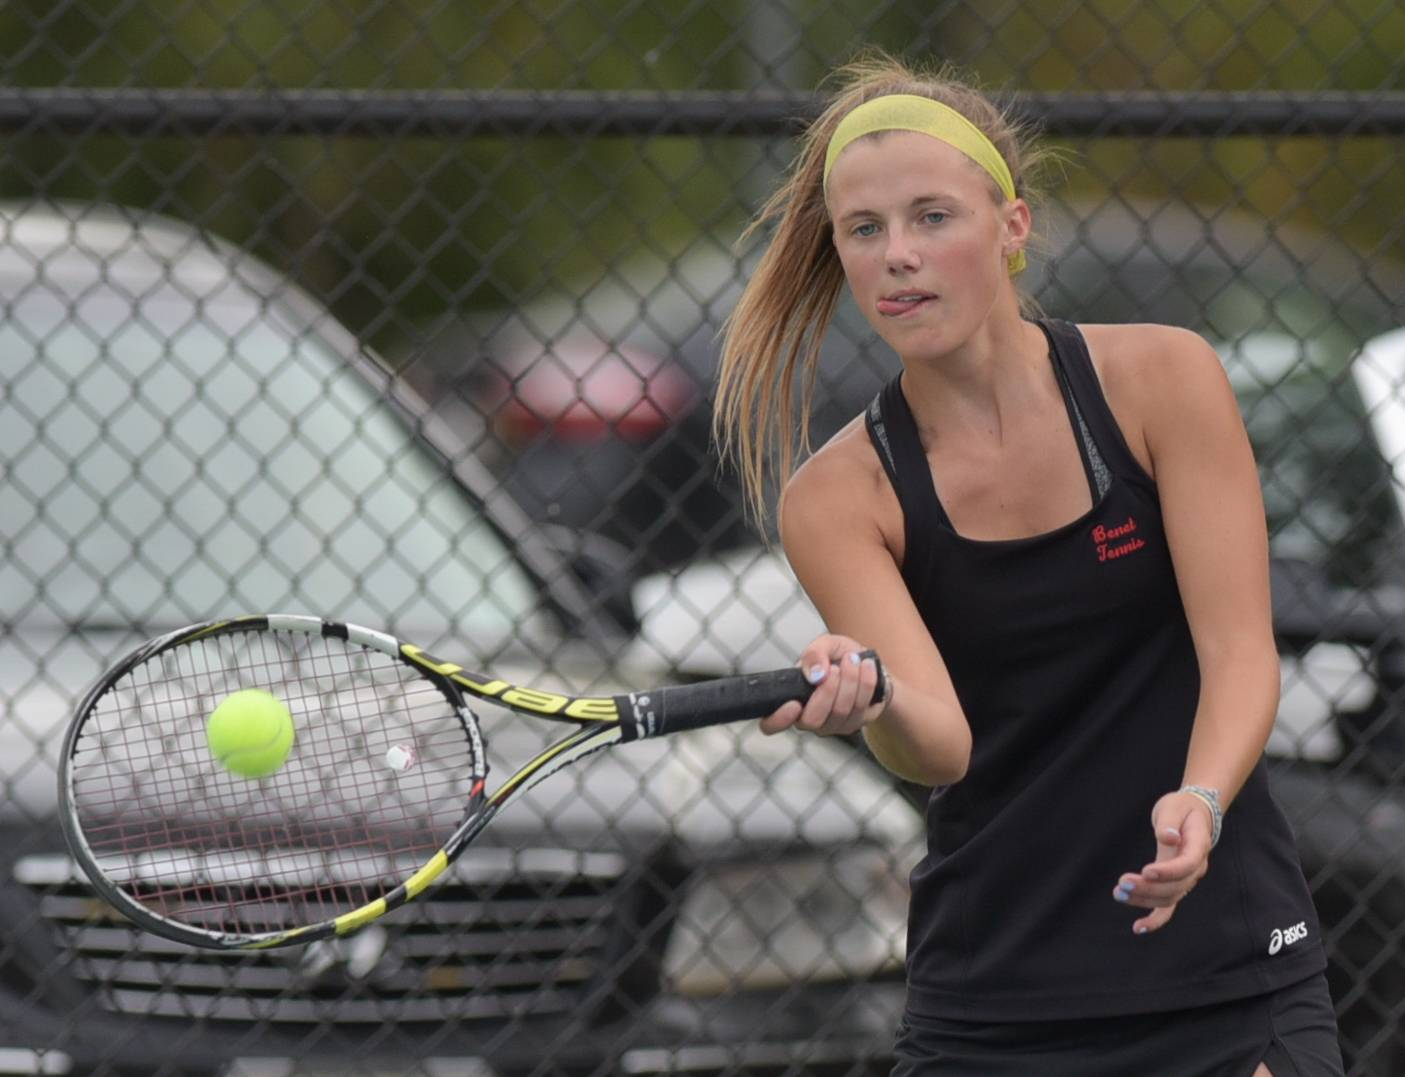 Benet's Caroline Arnold competes against York's Isabella Nicoli during varsity girls tennis in Lisle on October 2, 2017.